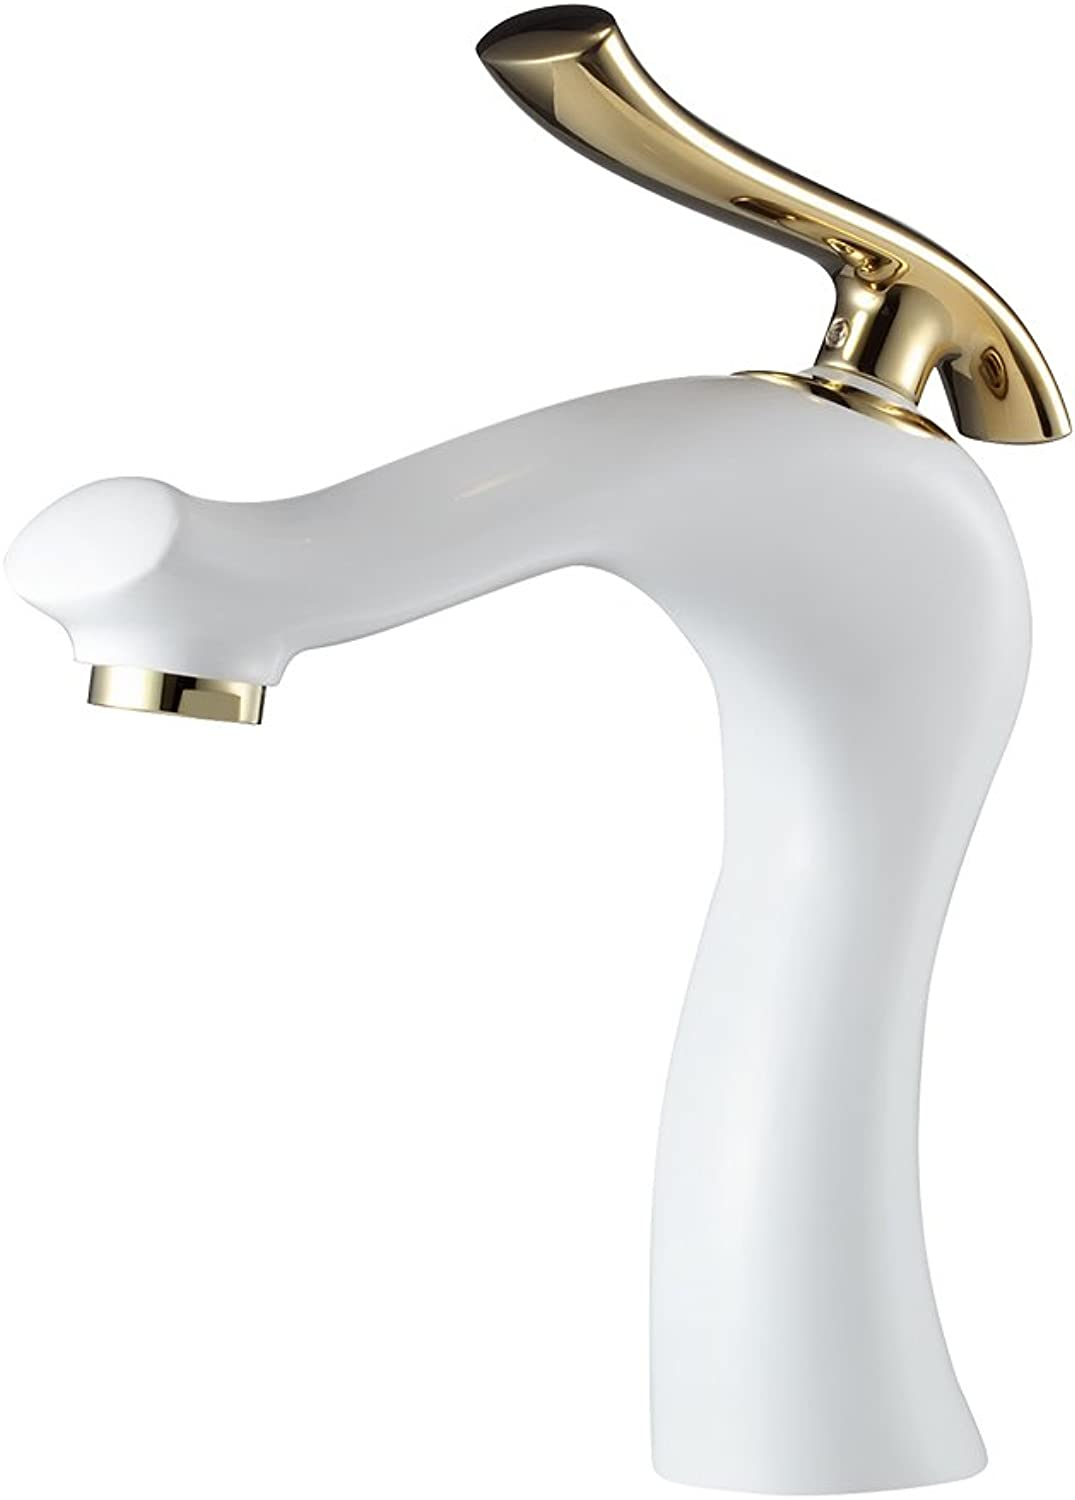 HeMu Waterfall Single Handle Bathroom Sink Faucet One Hole Deck Mount Oil Rubbed Bronze Lavatory,Chrome Finish (White)